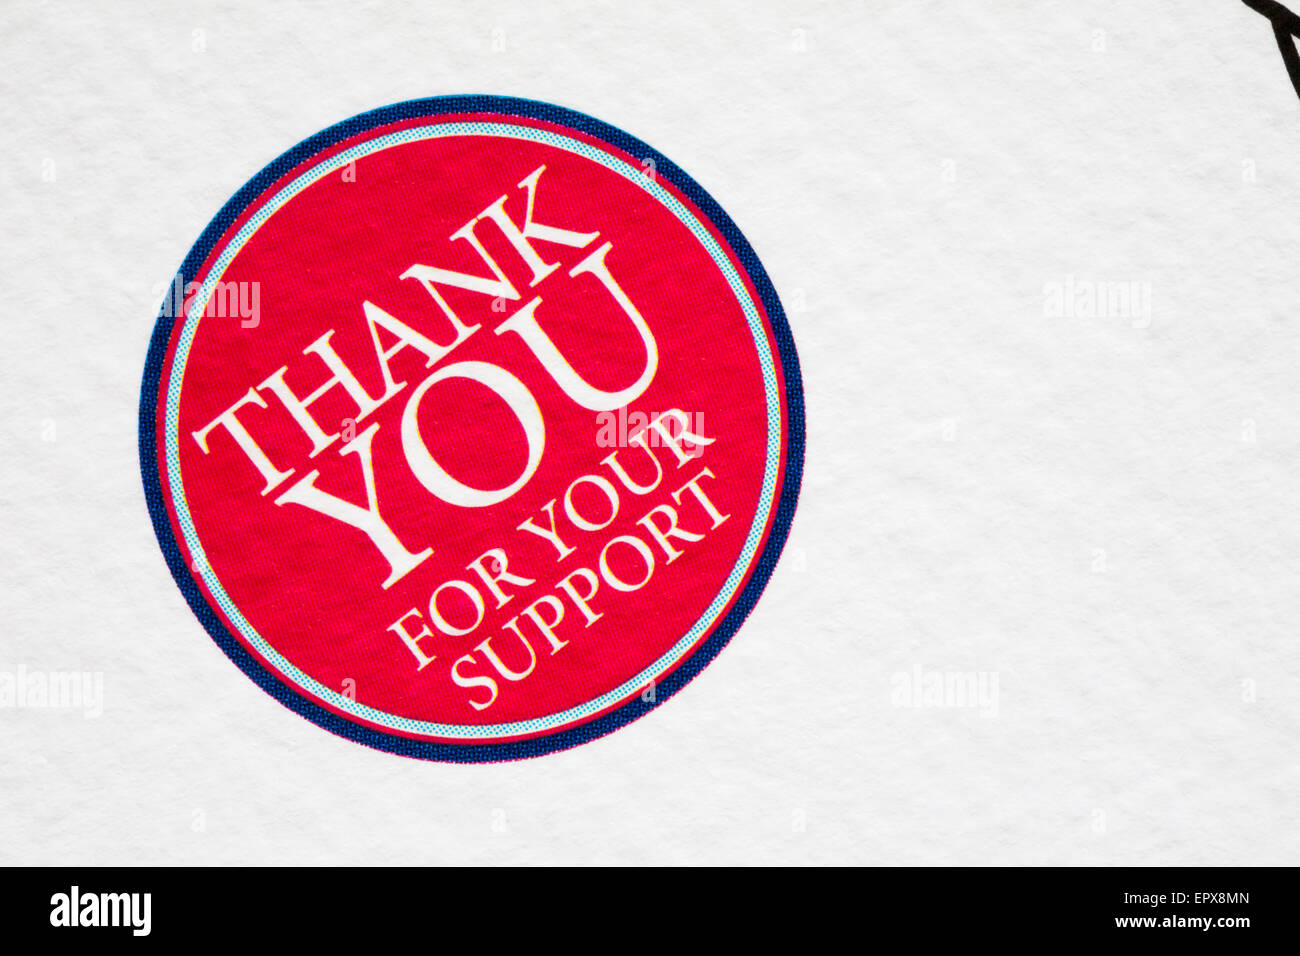 Thank You For Your Support Symbol On Help For Heroes Endorsed